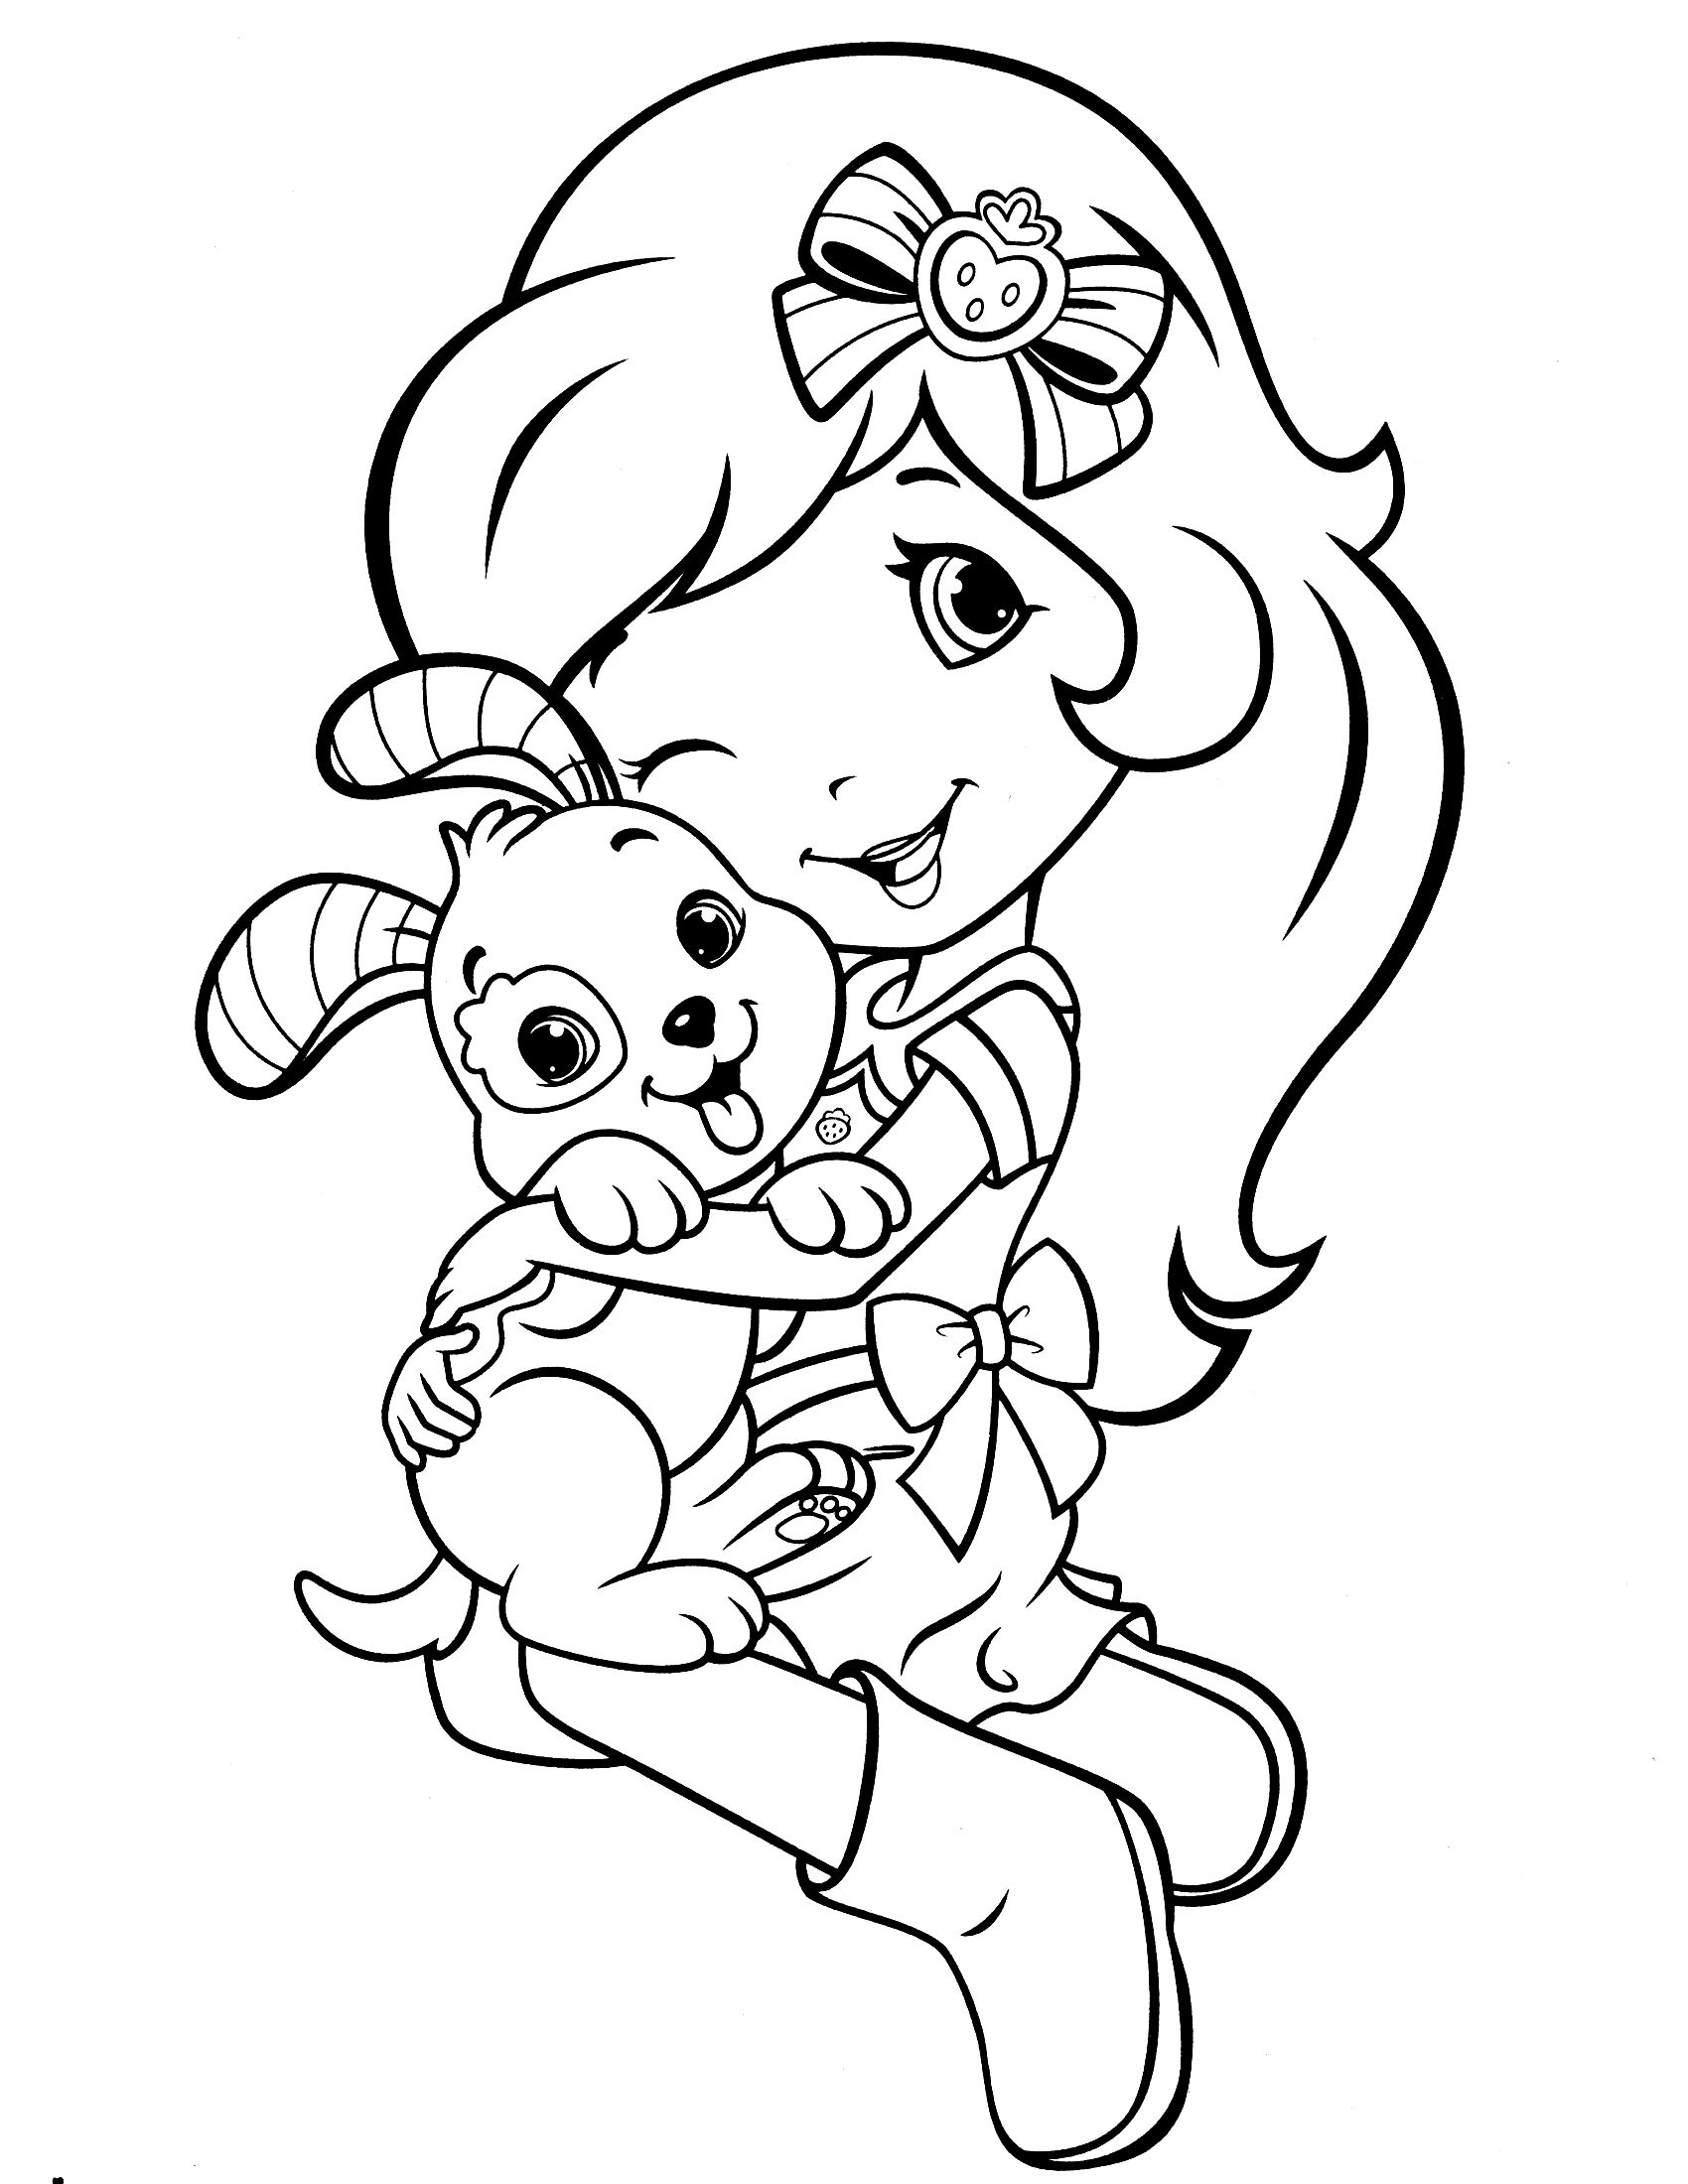 strawberry shortcake printables strawberry shortcake coloring page 55